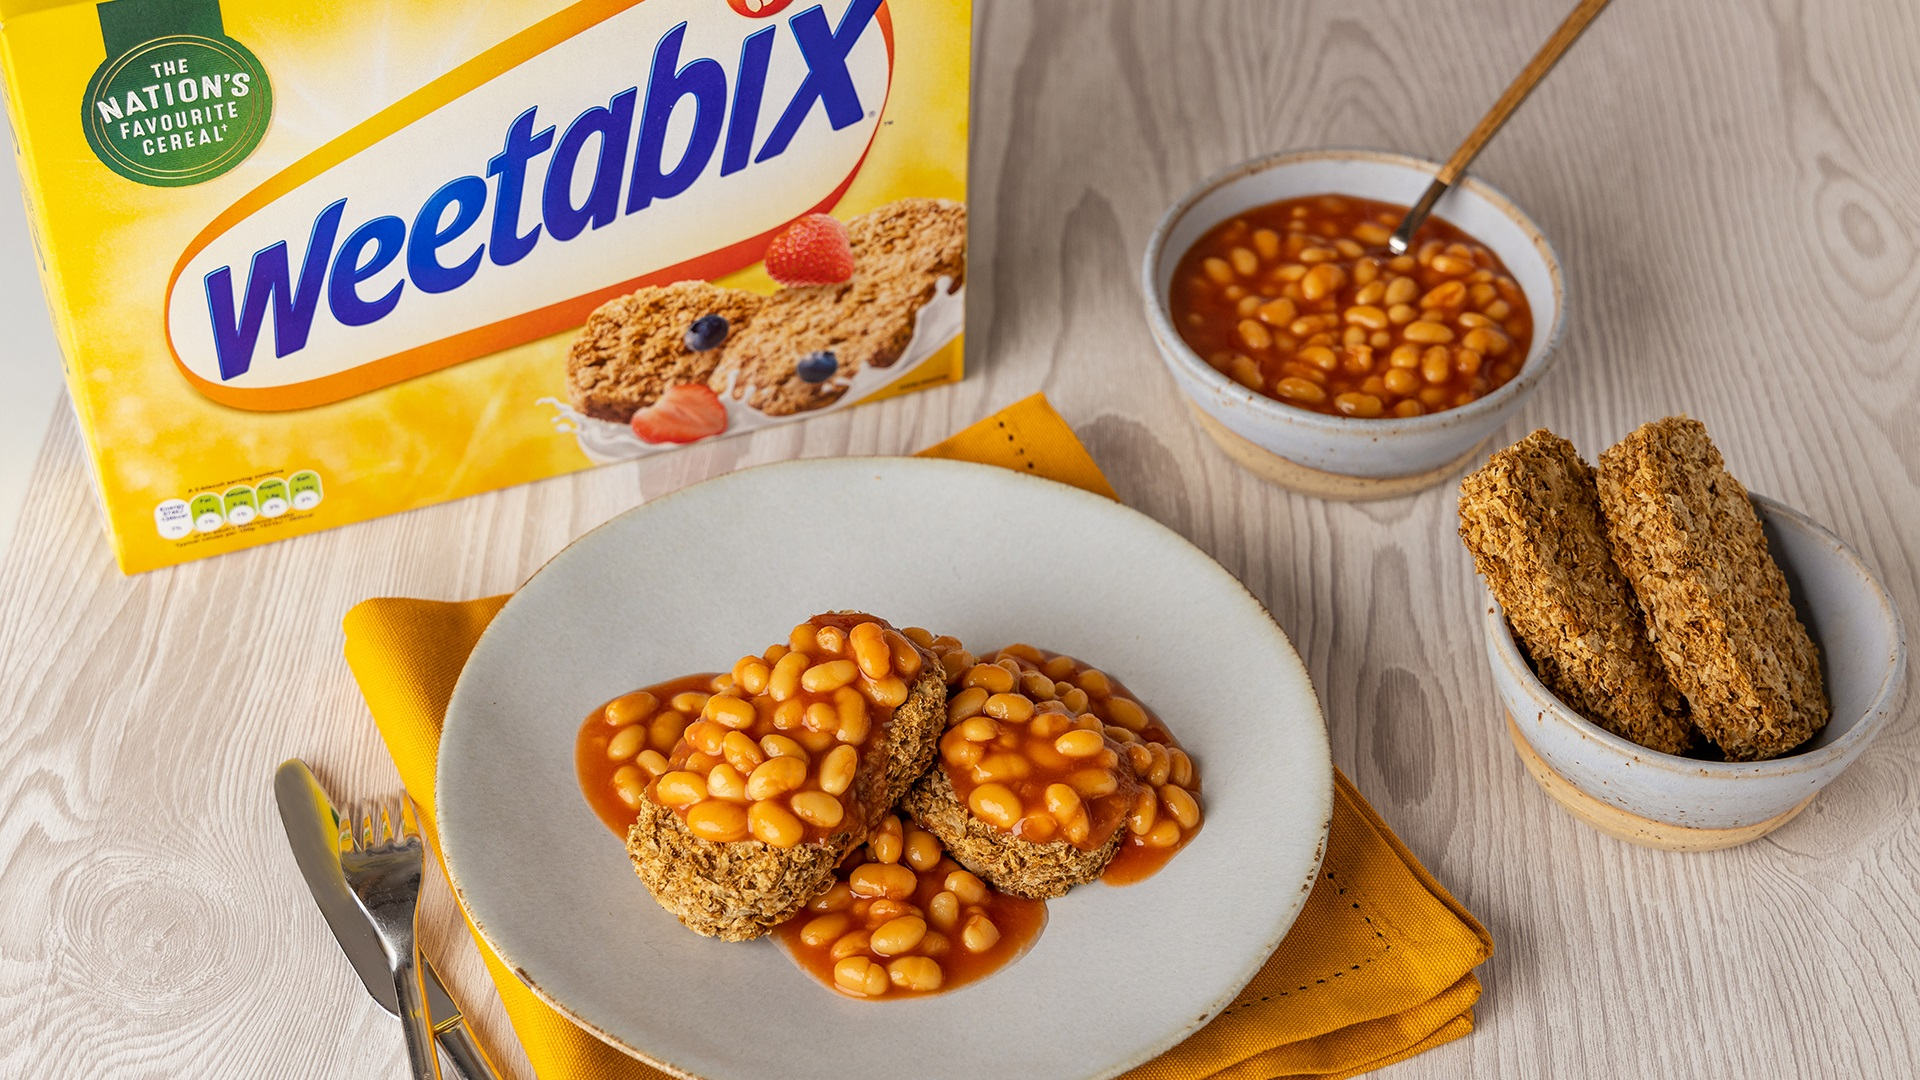 Weetabix and beans horror